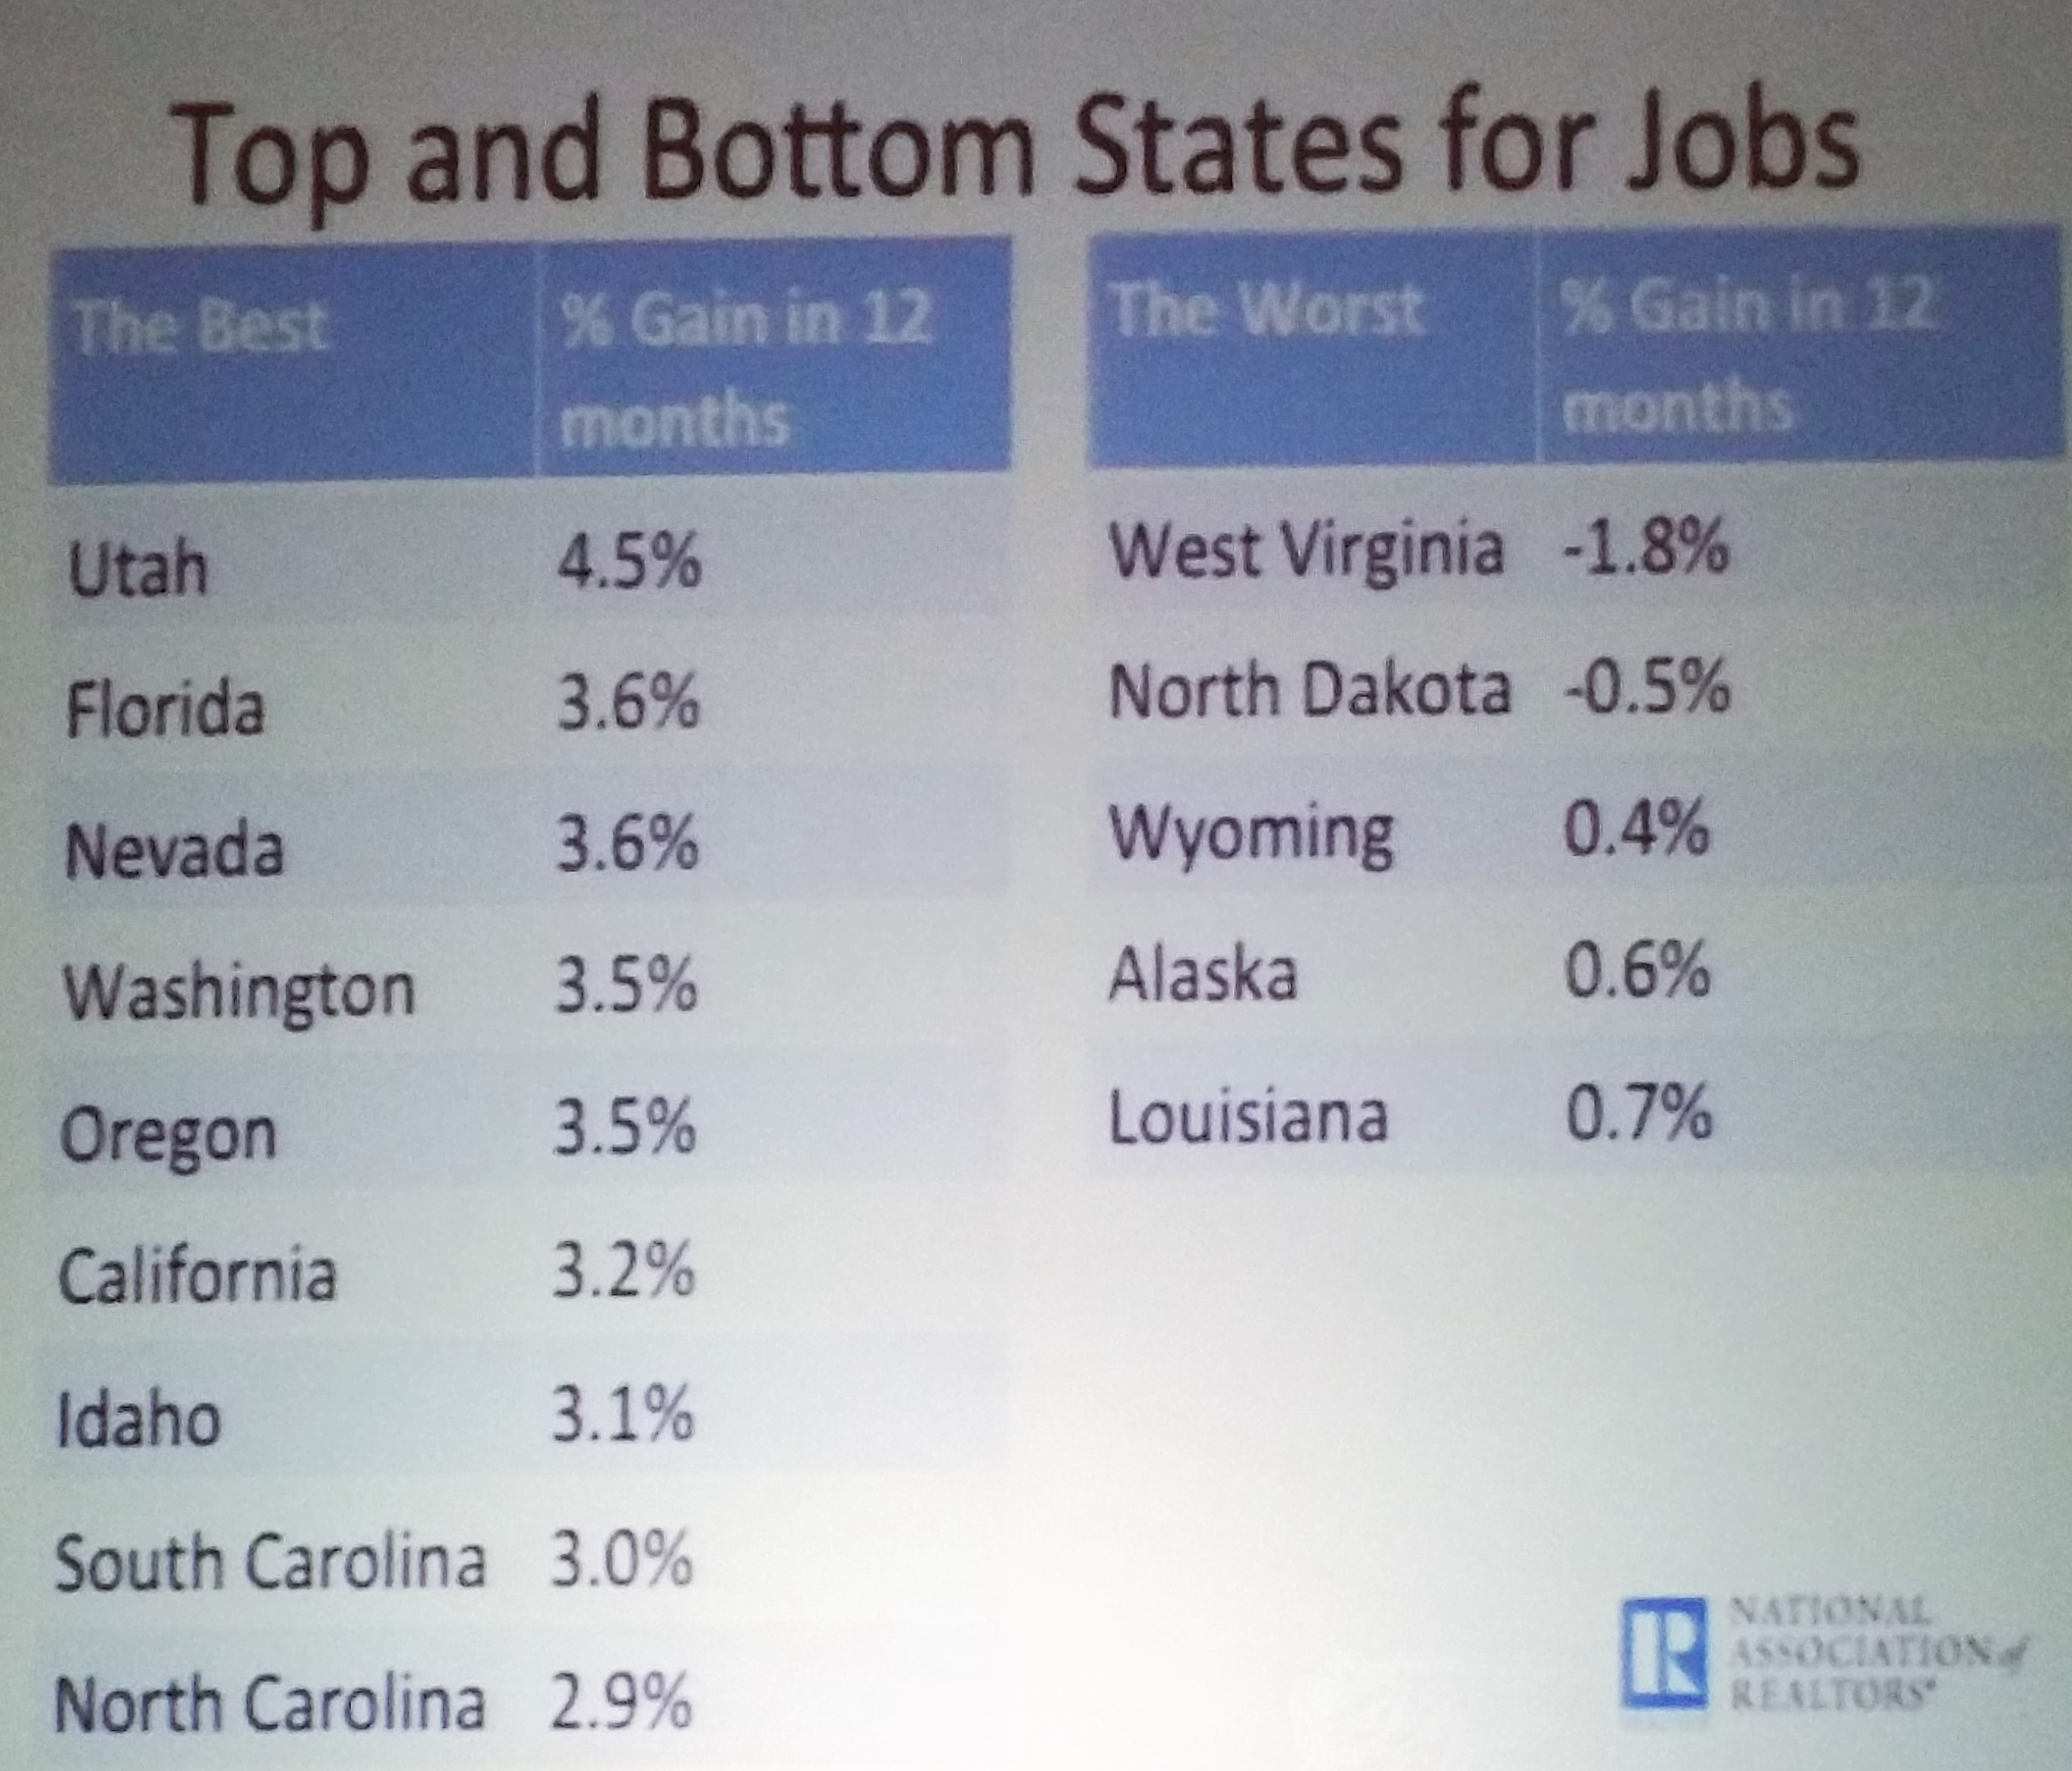 Top States for Jobs